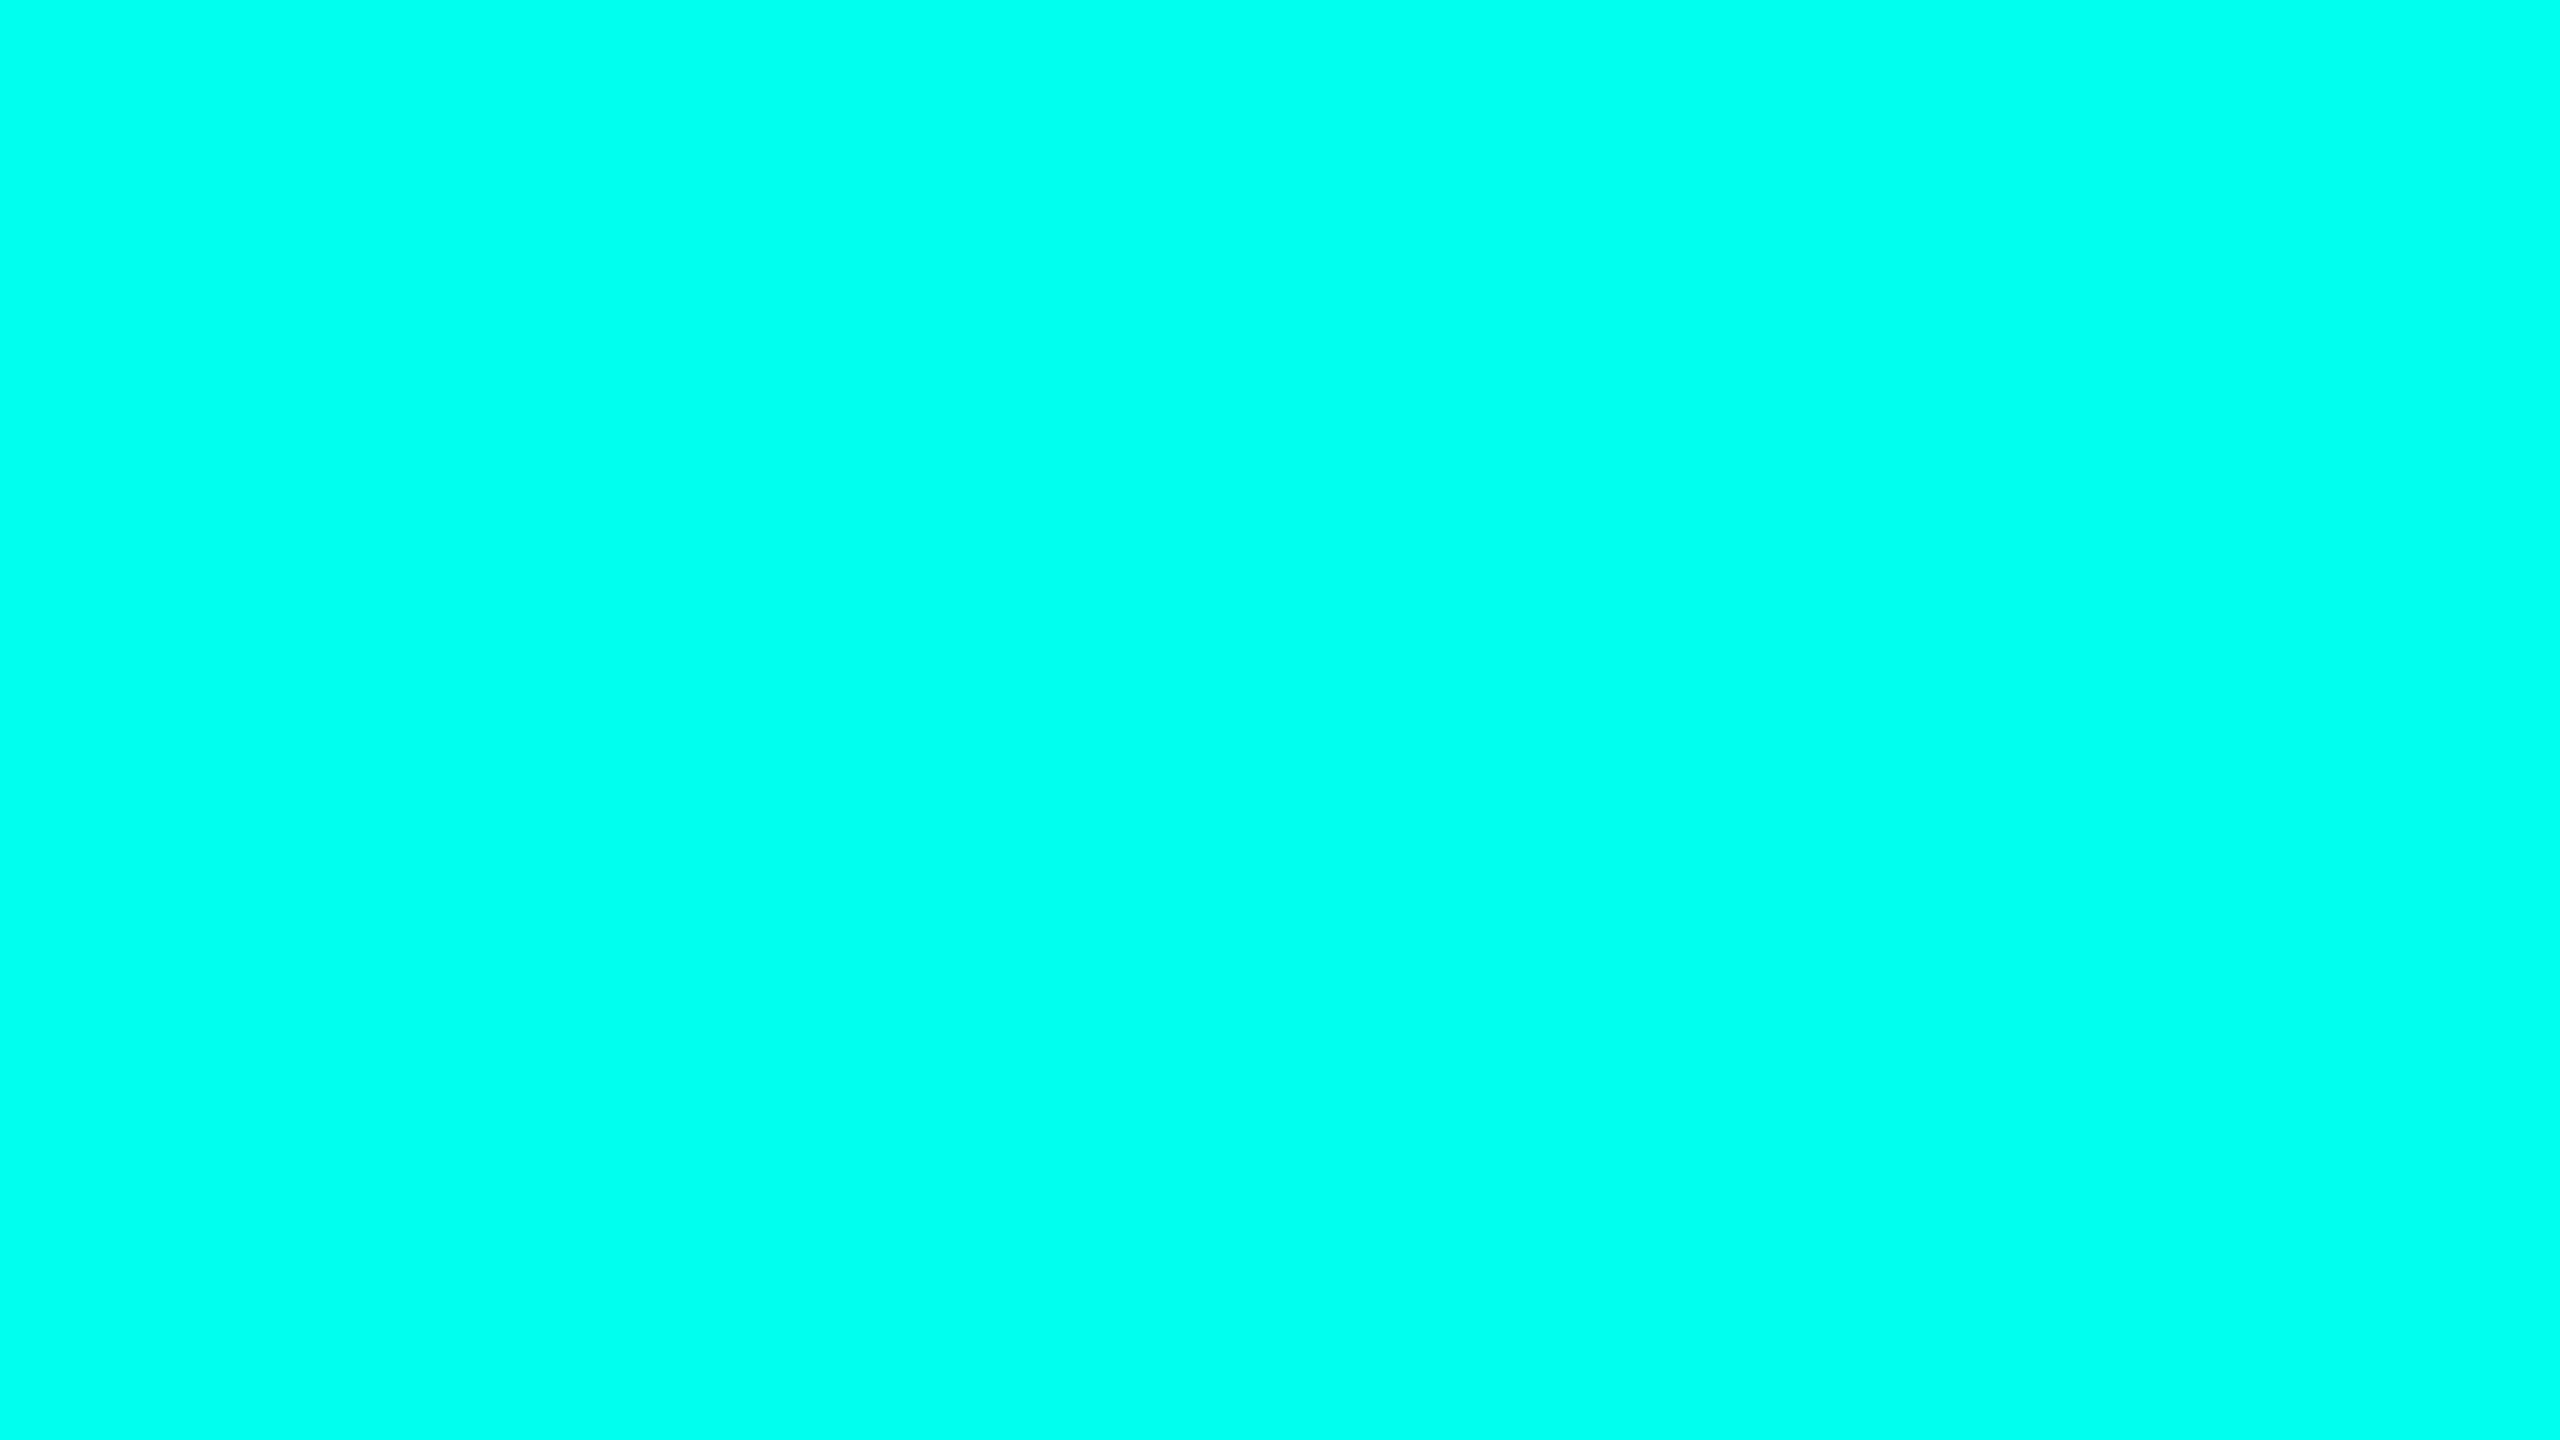 2560x1440 Wallpaper Hd 2560x1440 Turquoise Blue Solid Color Background